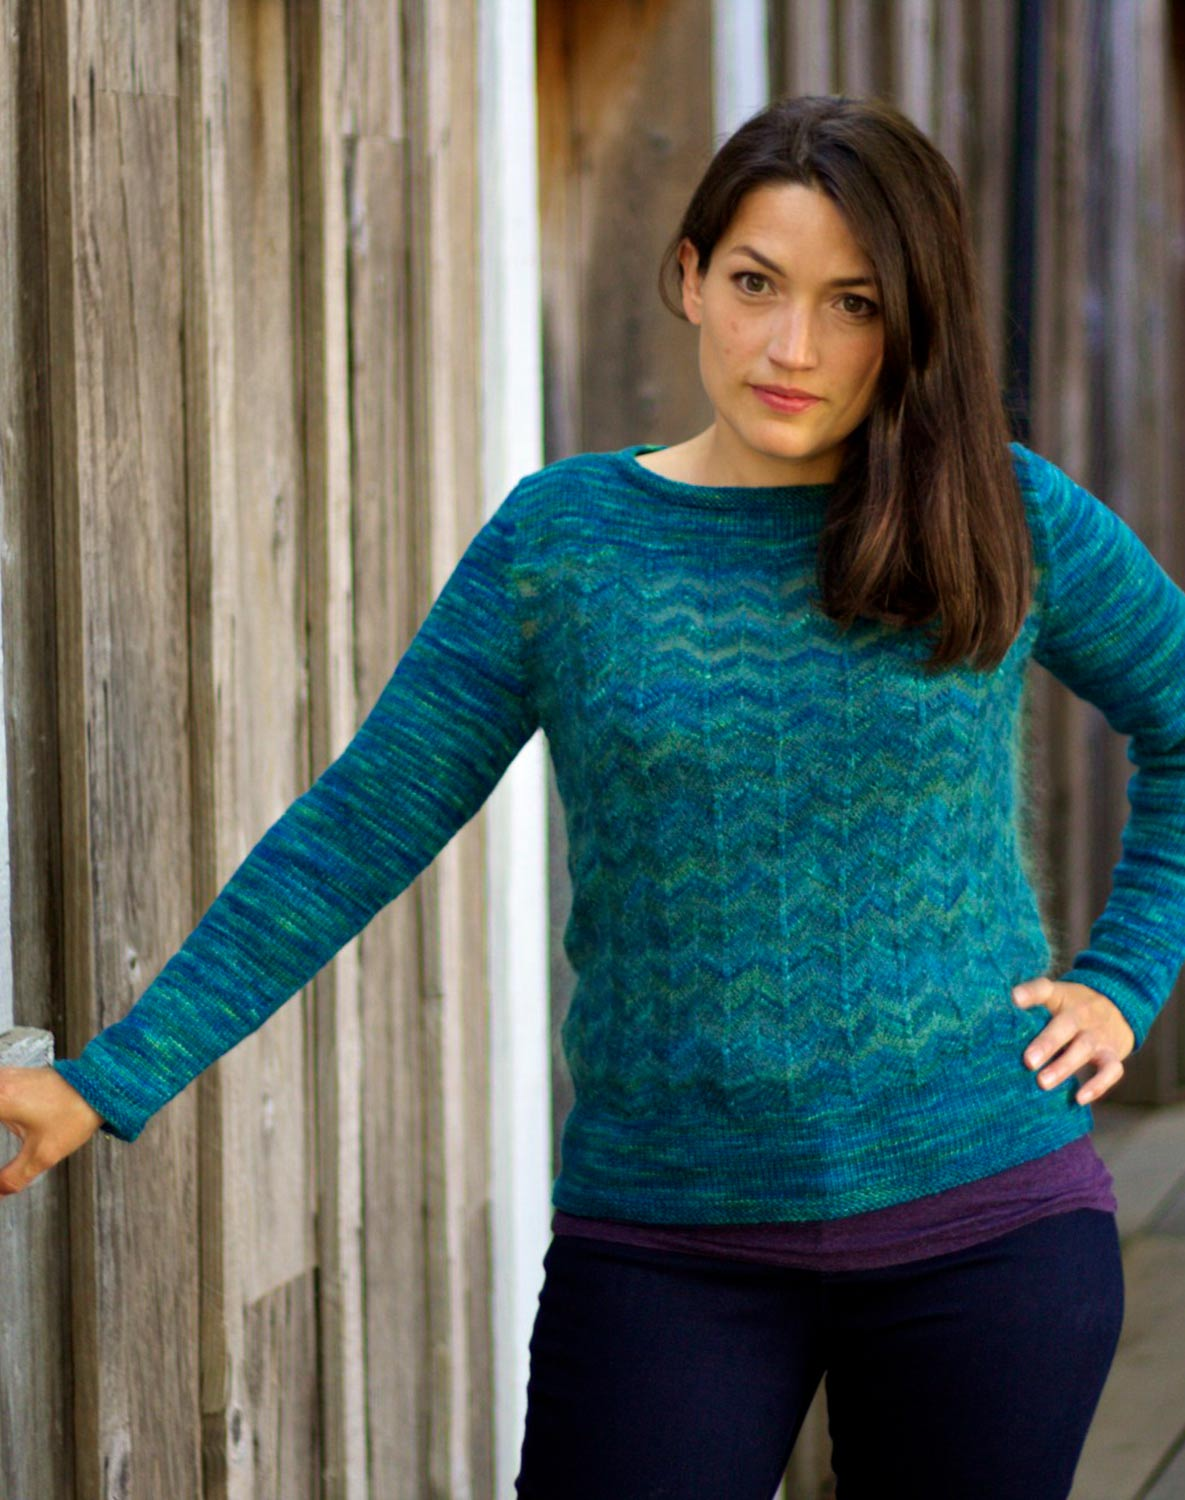 Pullover with striped chevron stitch pattern worked in two different yarns.